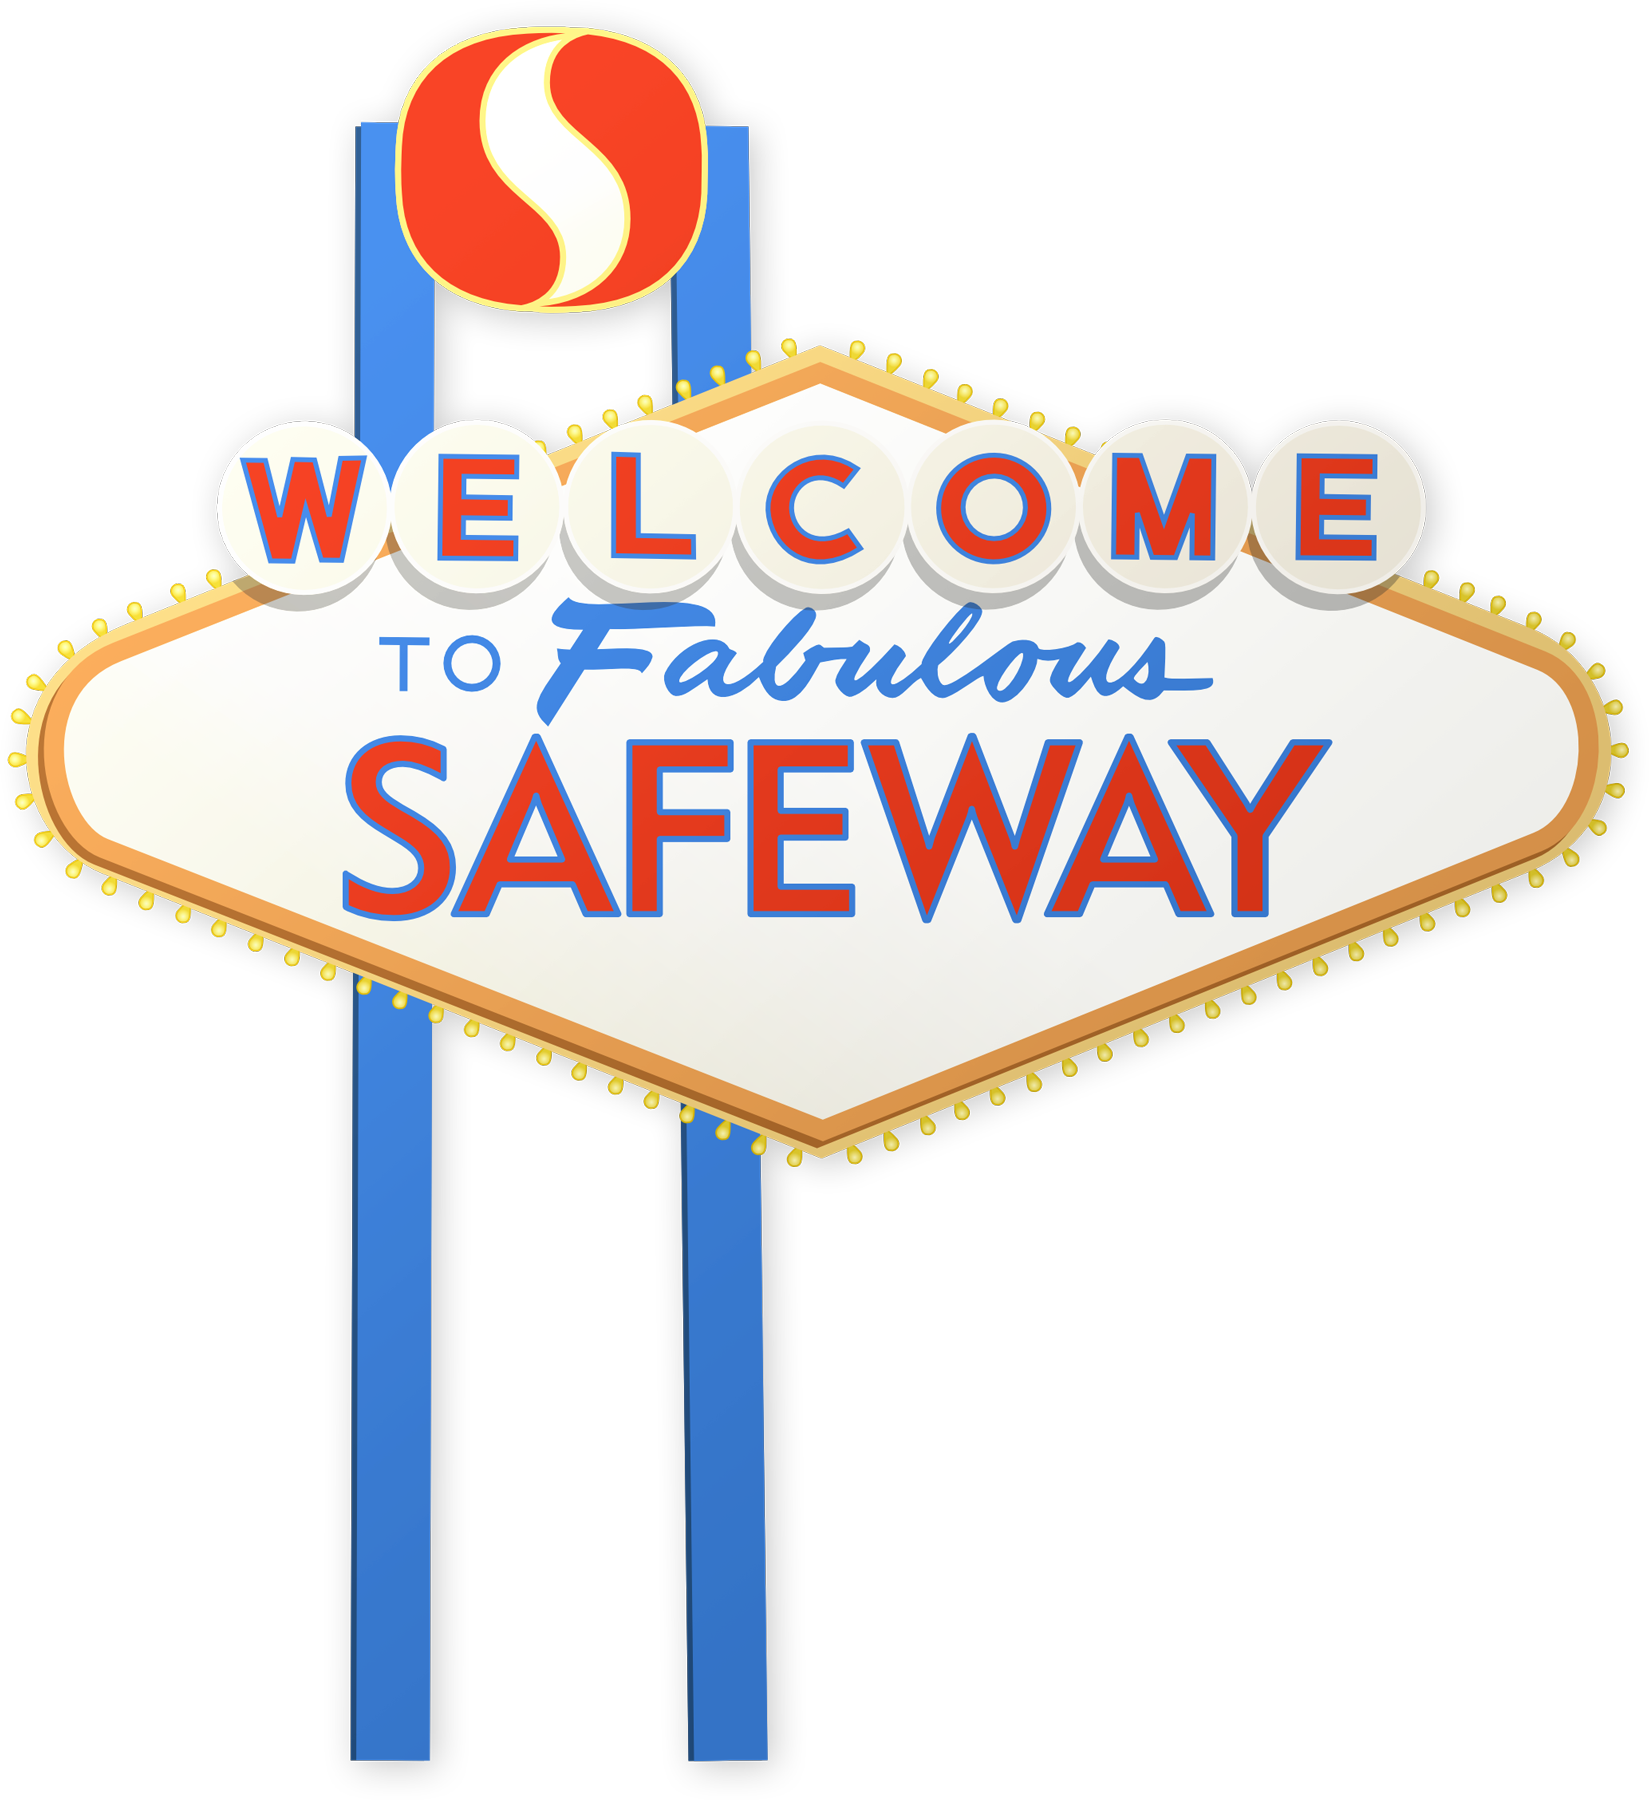 Welcome to las vegas sign clip art 4qglv8